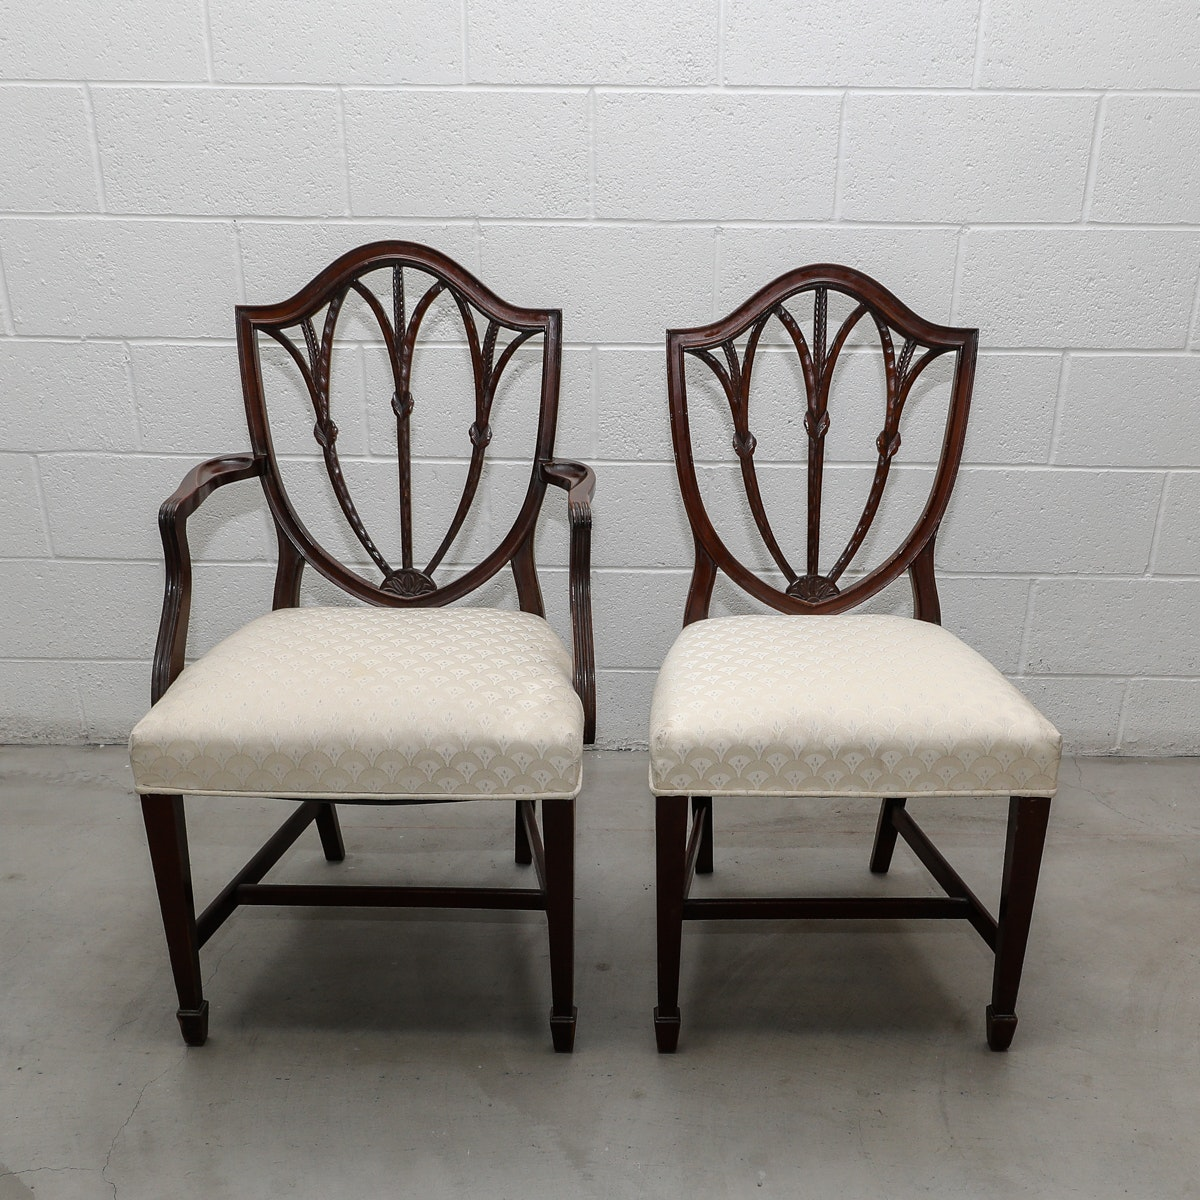 Eight Vintage Duncan Phyfe Style Shield Back Dining Chairs